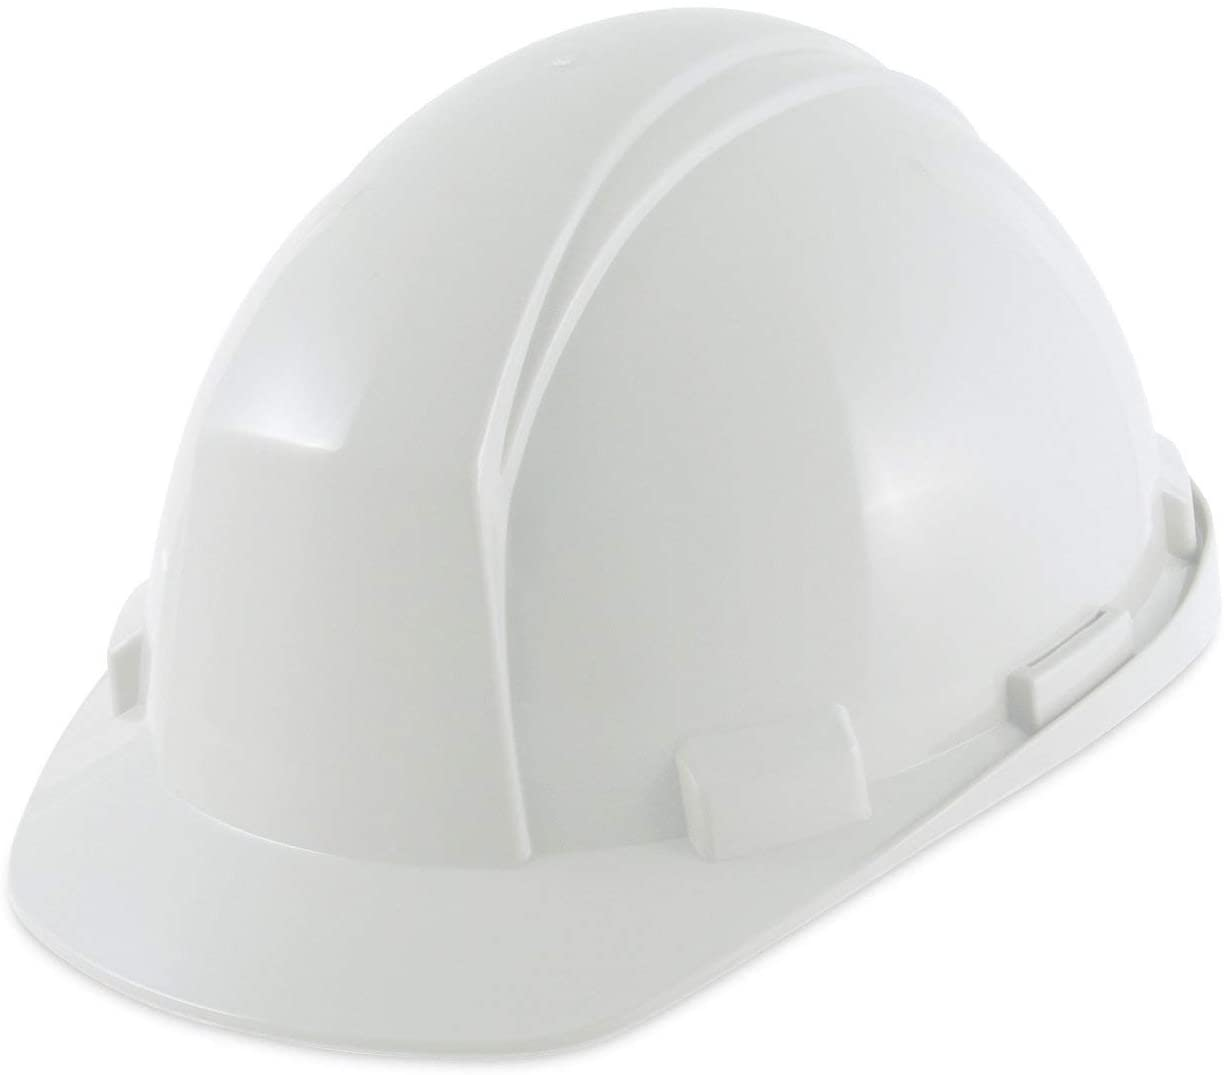 North by HONEYWELL A89R070000 Hard Hat, FrtBrim, Slotted, 4Ratchet, Blue